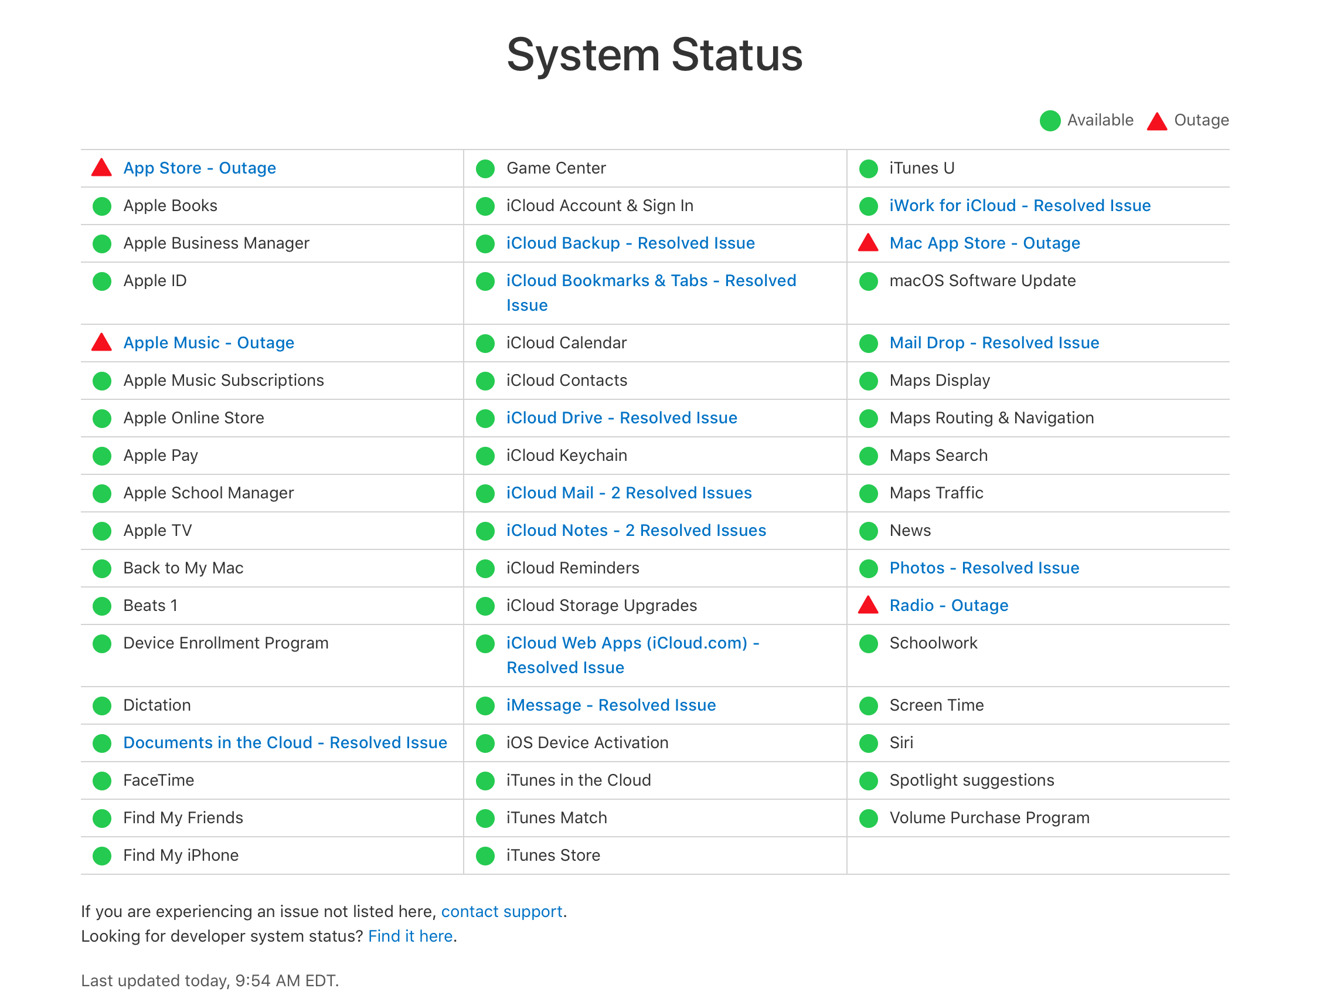 Apple Suffering from Limited Apple Music, App Store Outages [u]